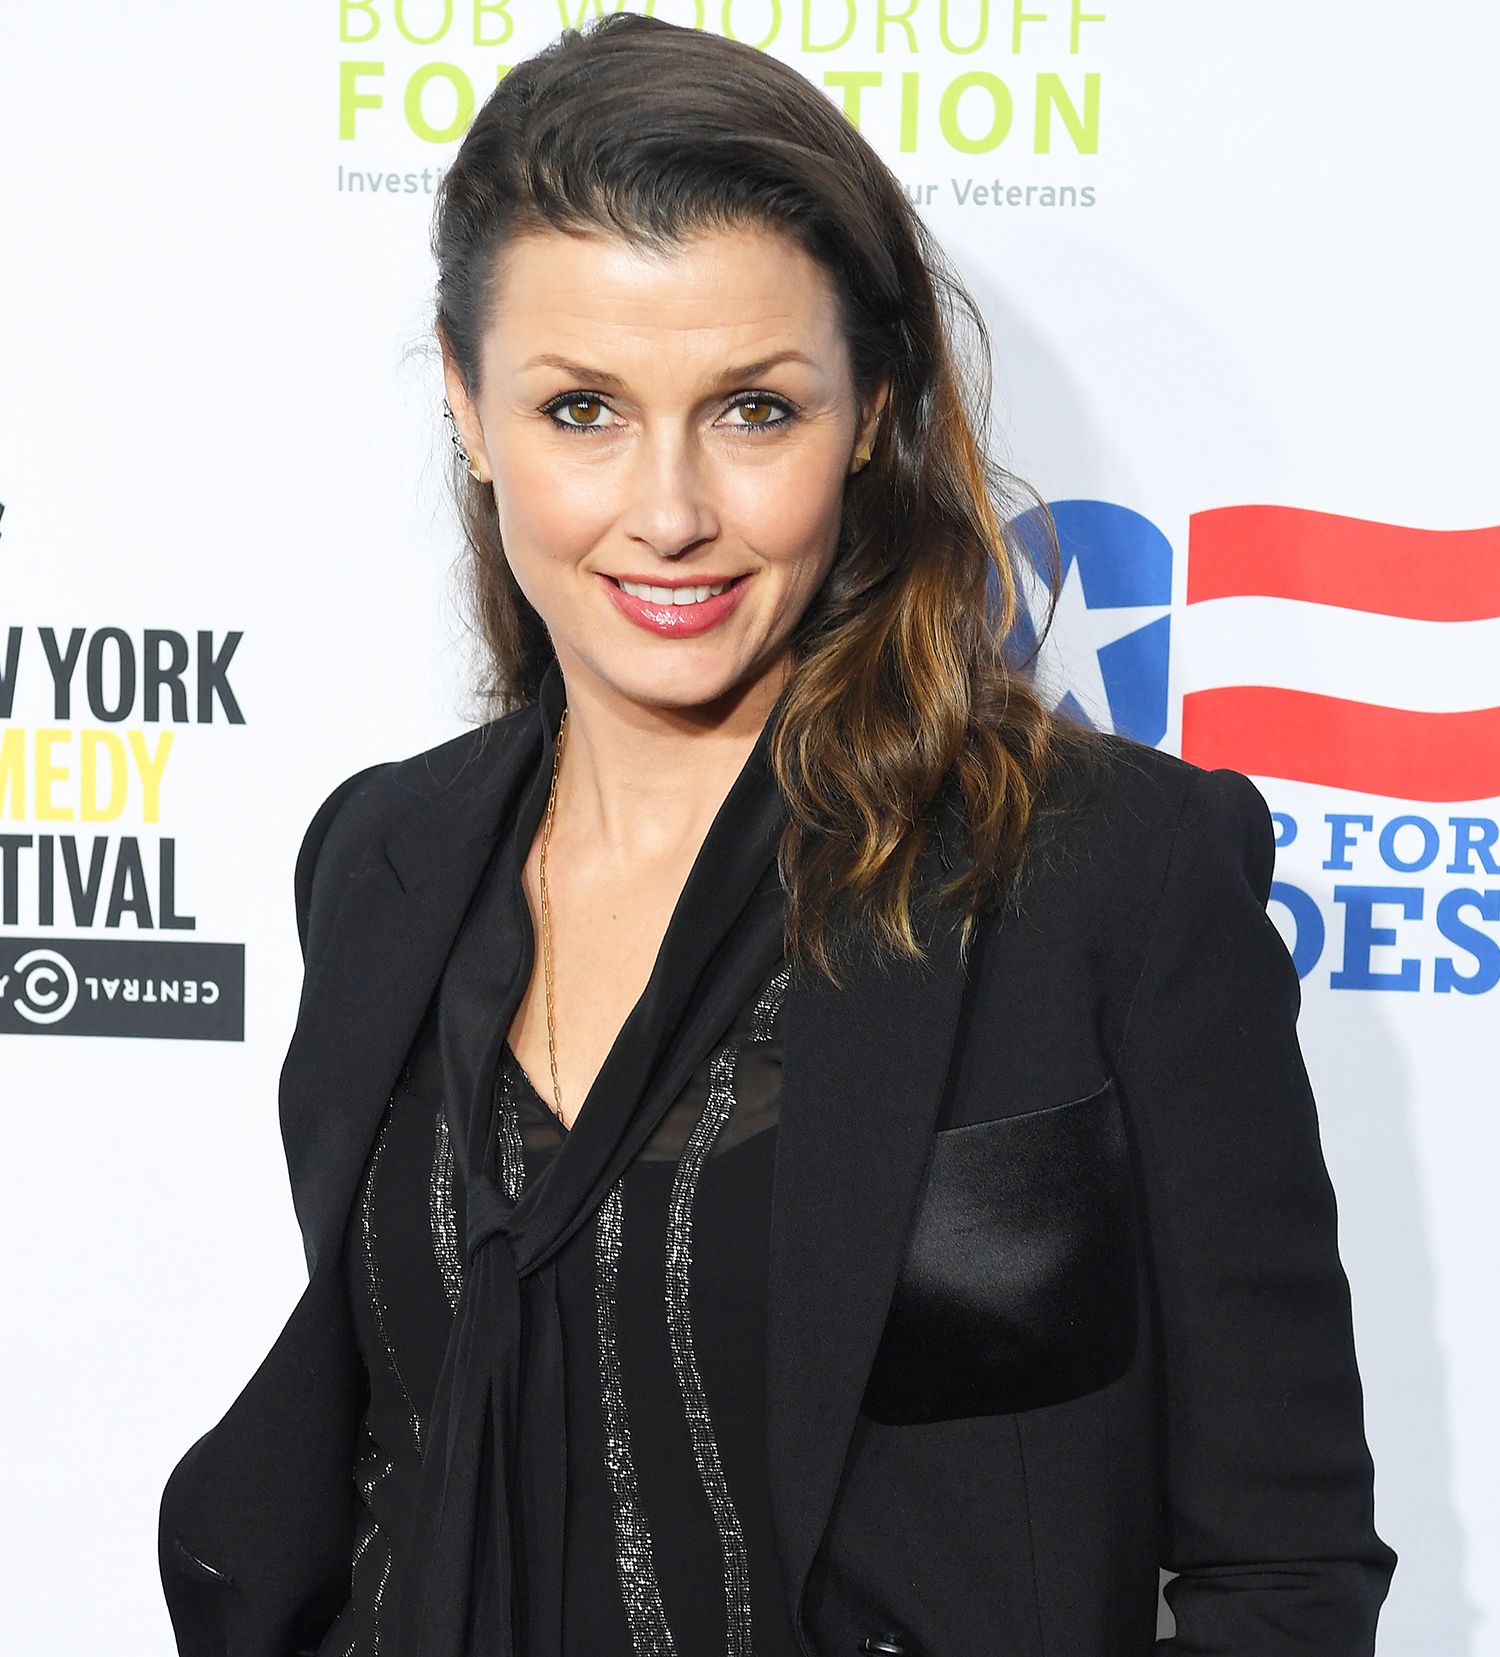 Discussion on this topic: Victoria Horne, bridget-moynahan/